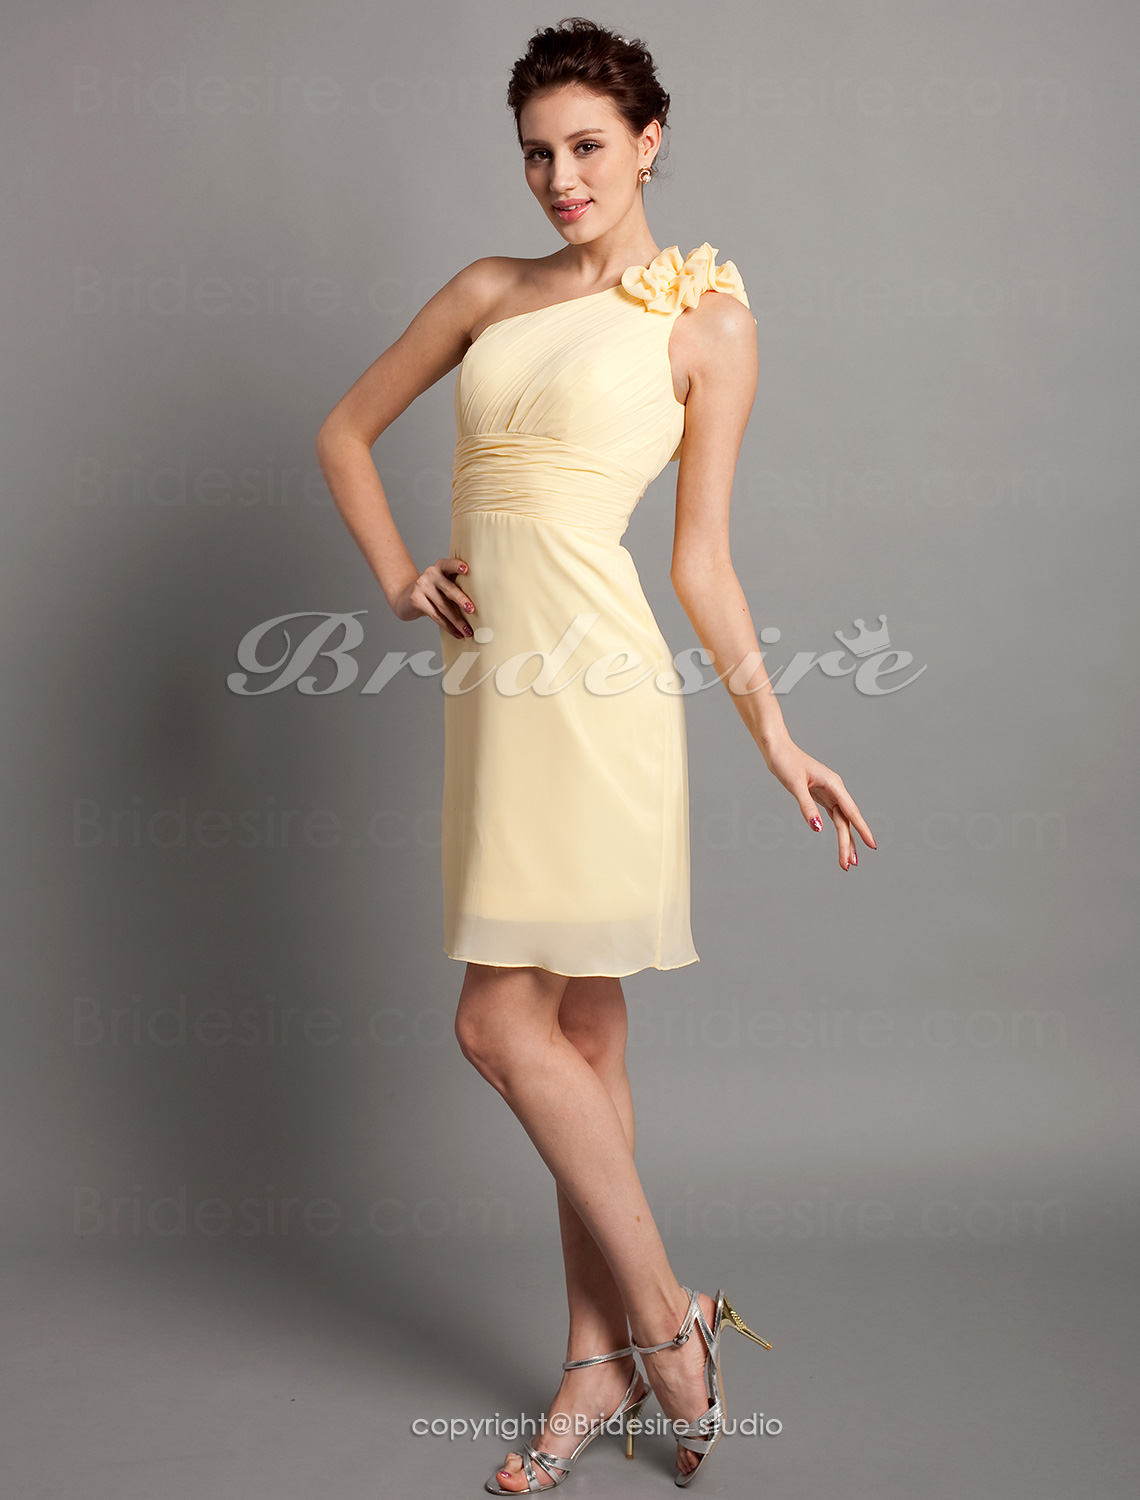 Sheath/ Column Chiffon Over Satin Knee-length One Shoulder Bridesmaid Dress